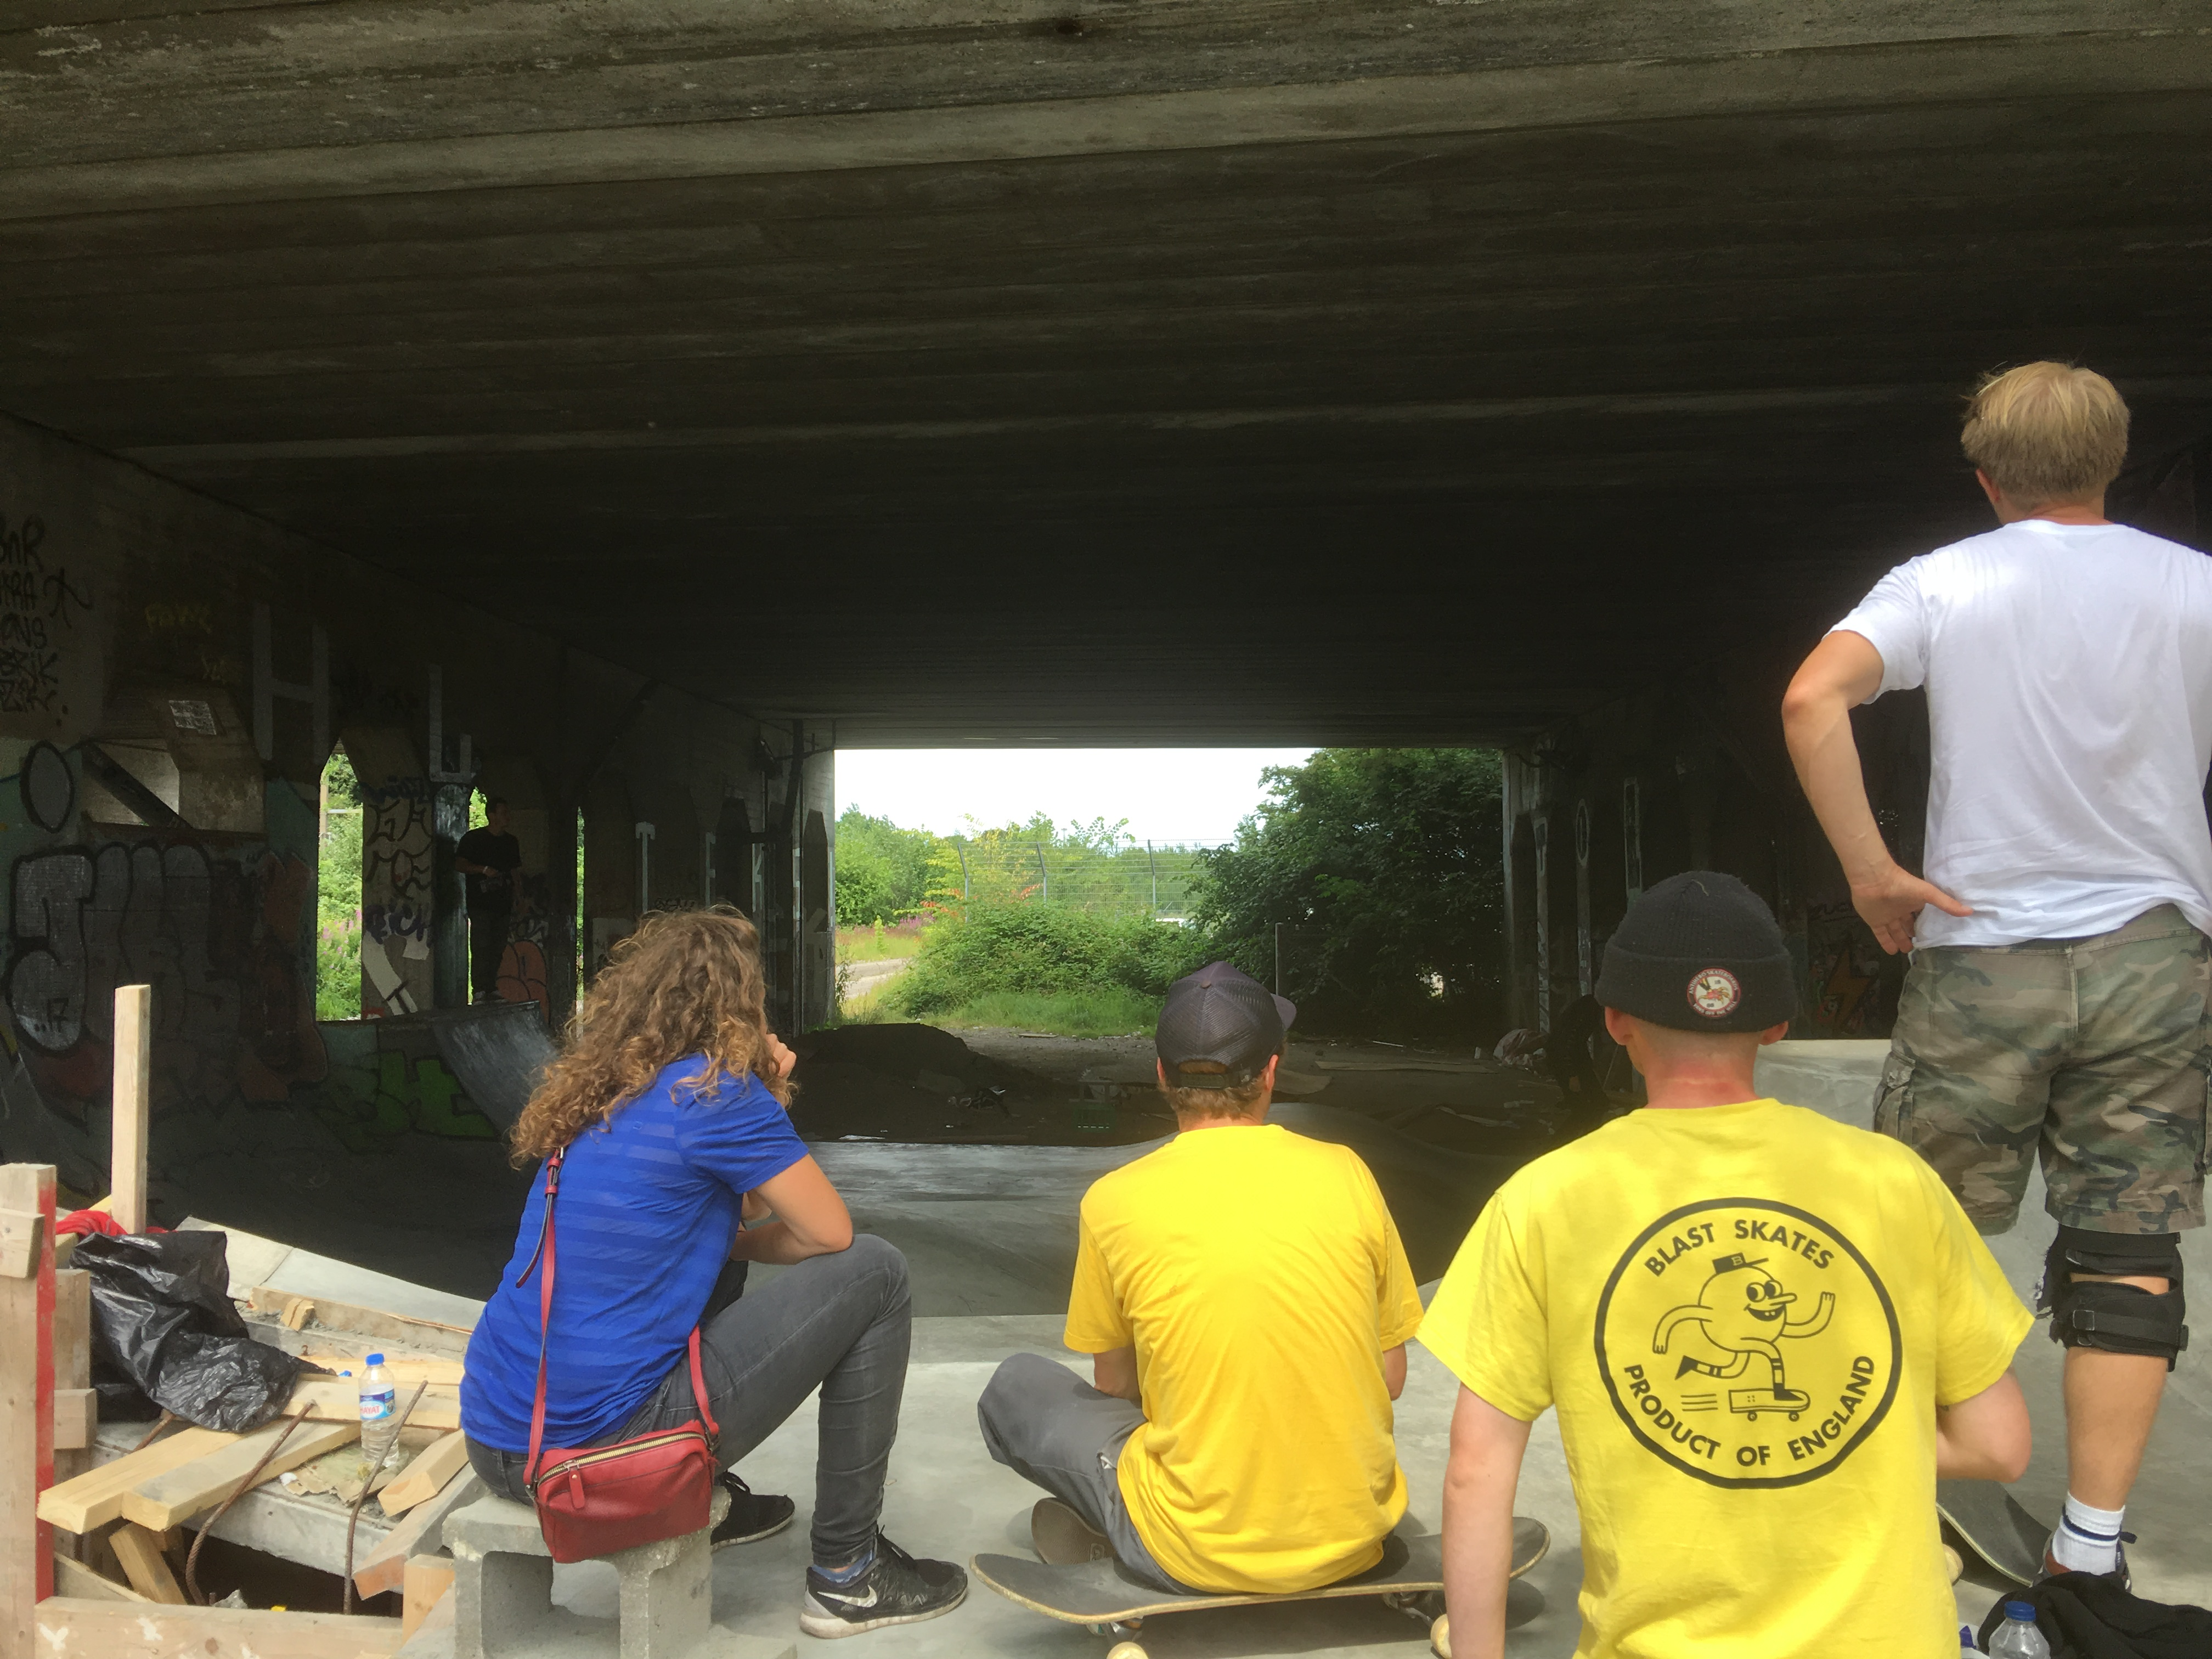 Next stop, under da bridge, this spot was packed with skaters from France, England, Russia.